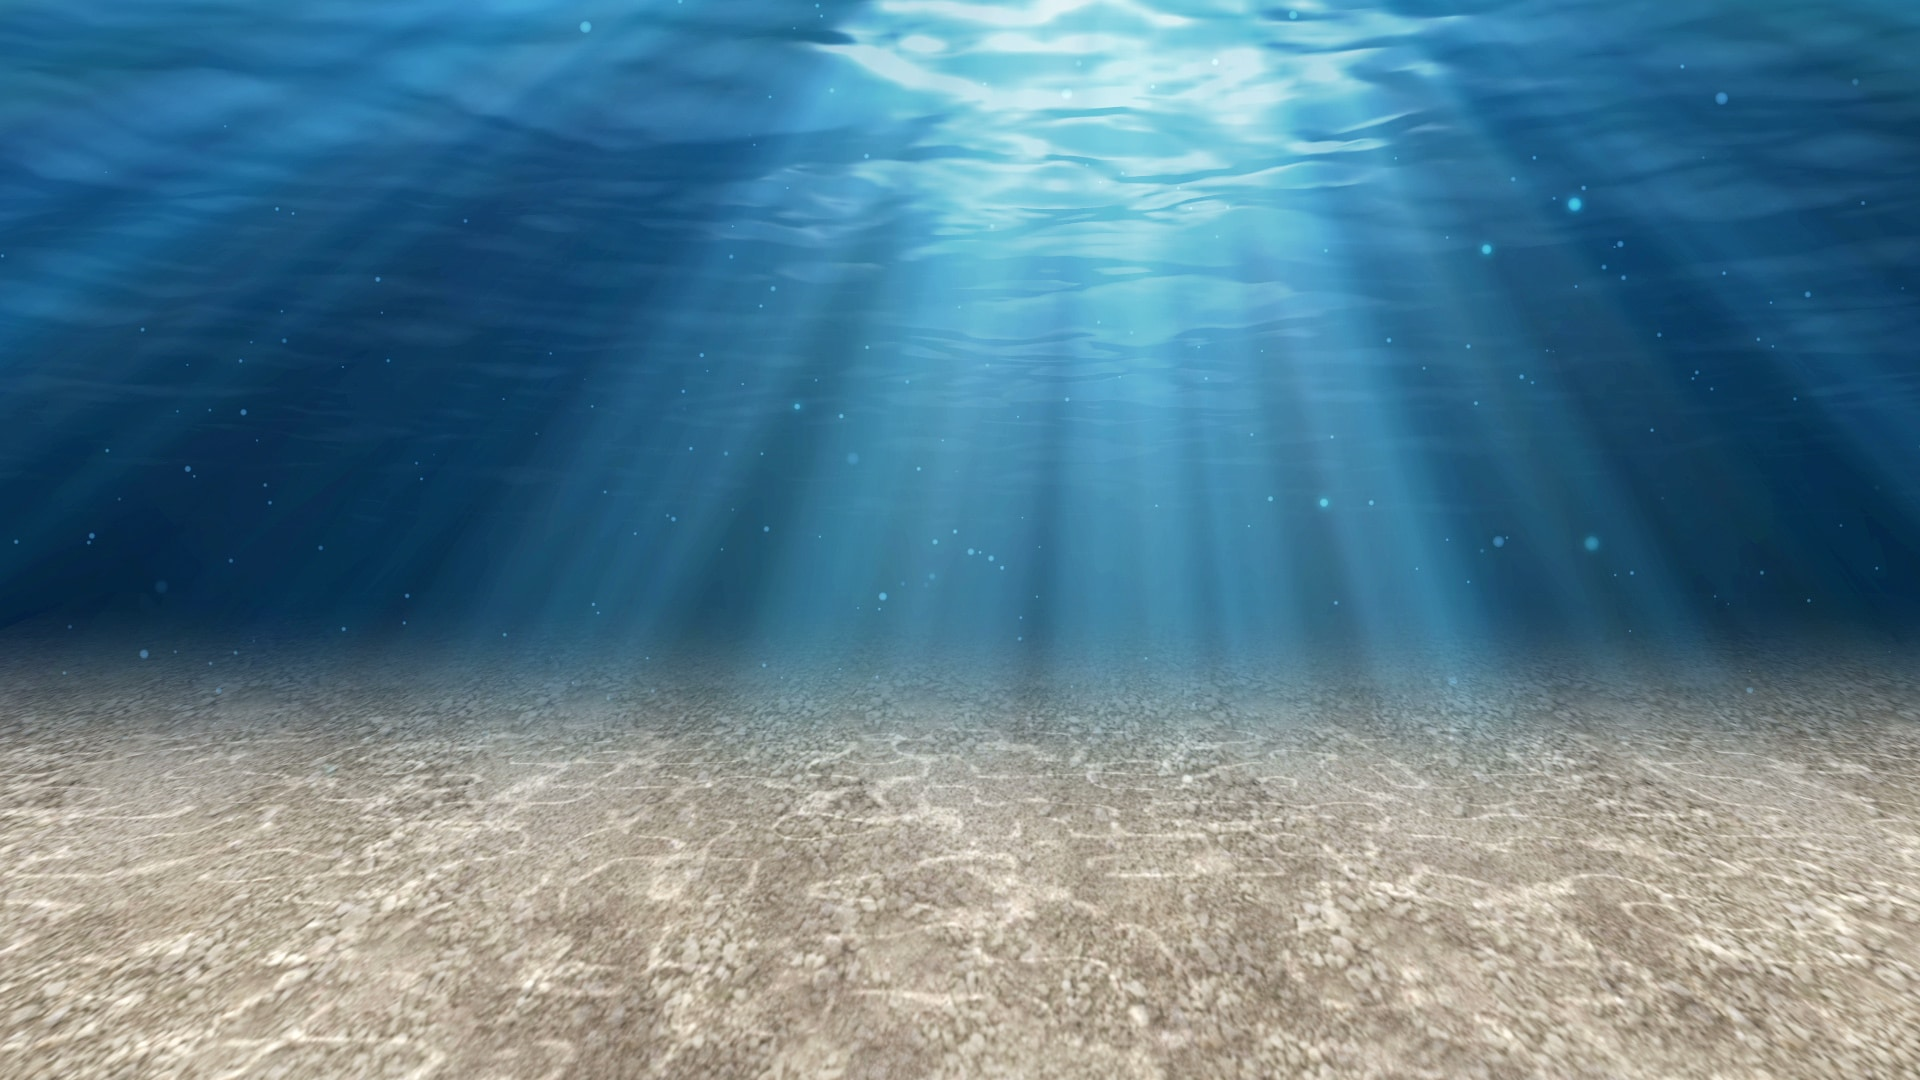 4 Free Ocean and Underwater VBS Moving Backgrounds  CMG  Church Motion Graphics